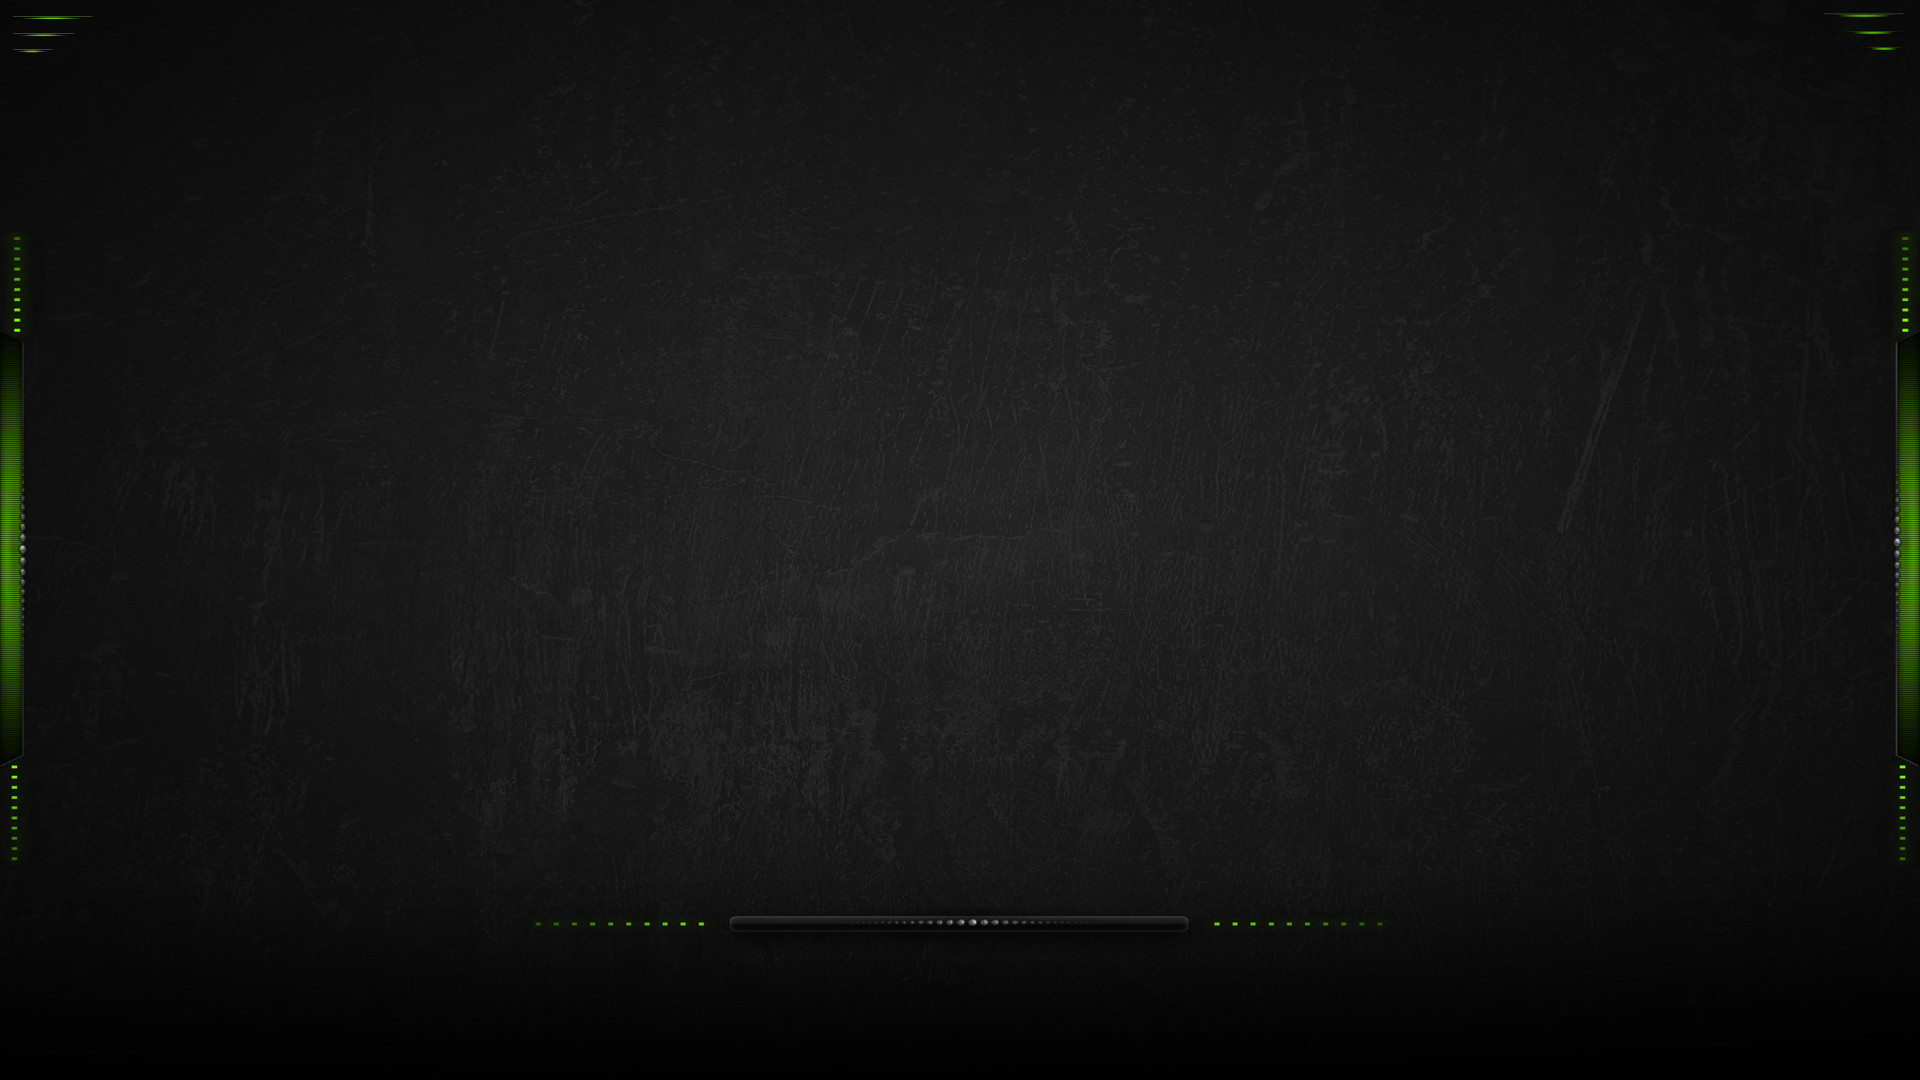 1920x1080  Plain Wallpapers HD green black